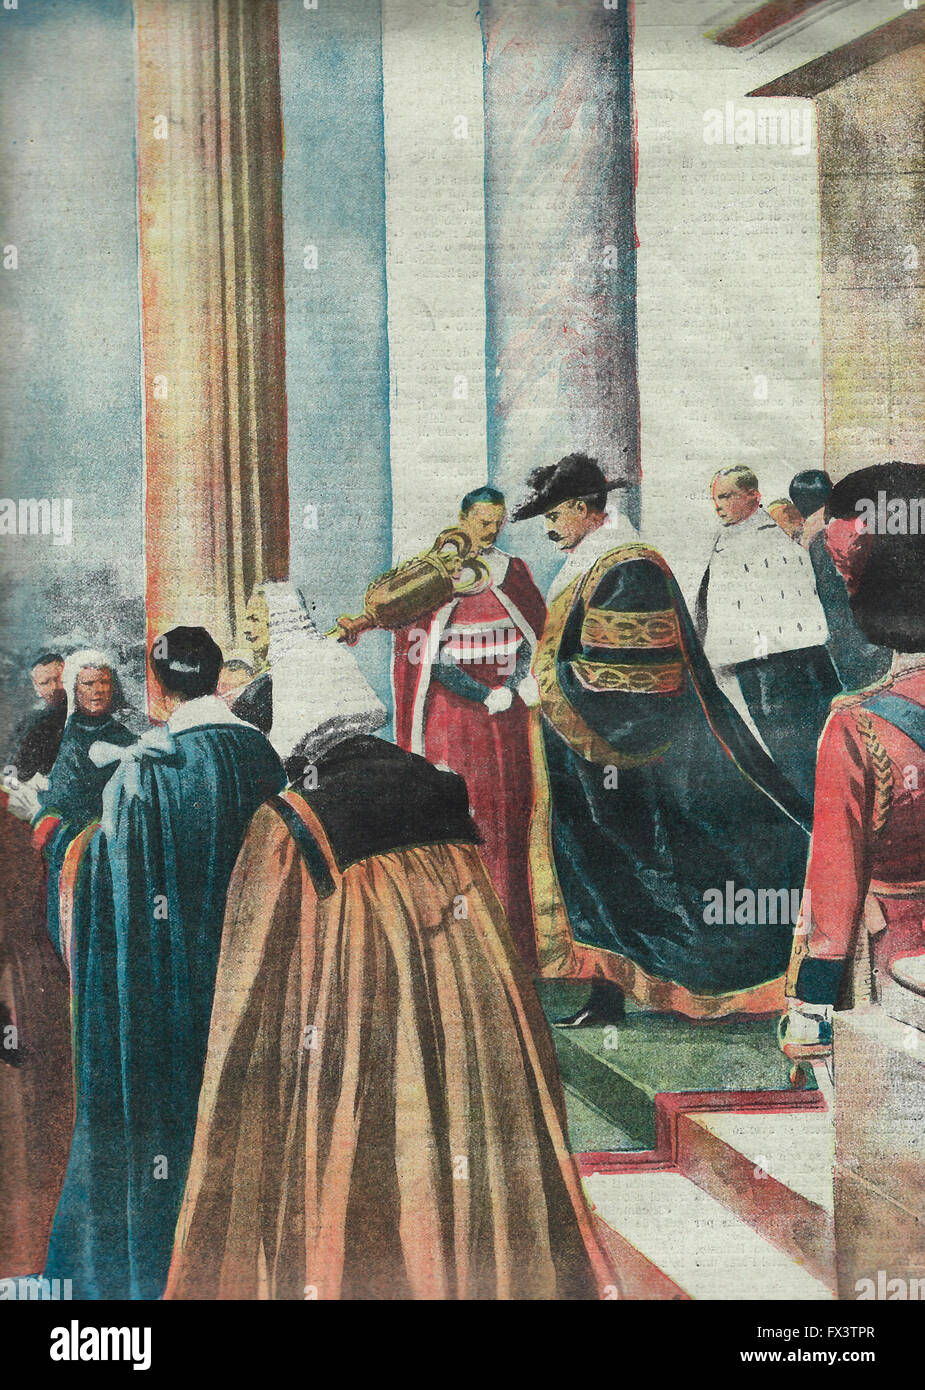 The picturesque and grand ceremonies for the proclamation of the new Lord Mayor of London : The first magistrate - Stock Image